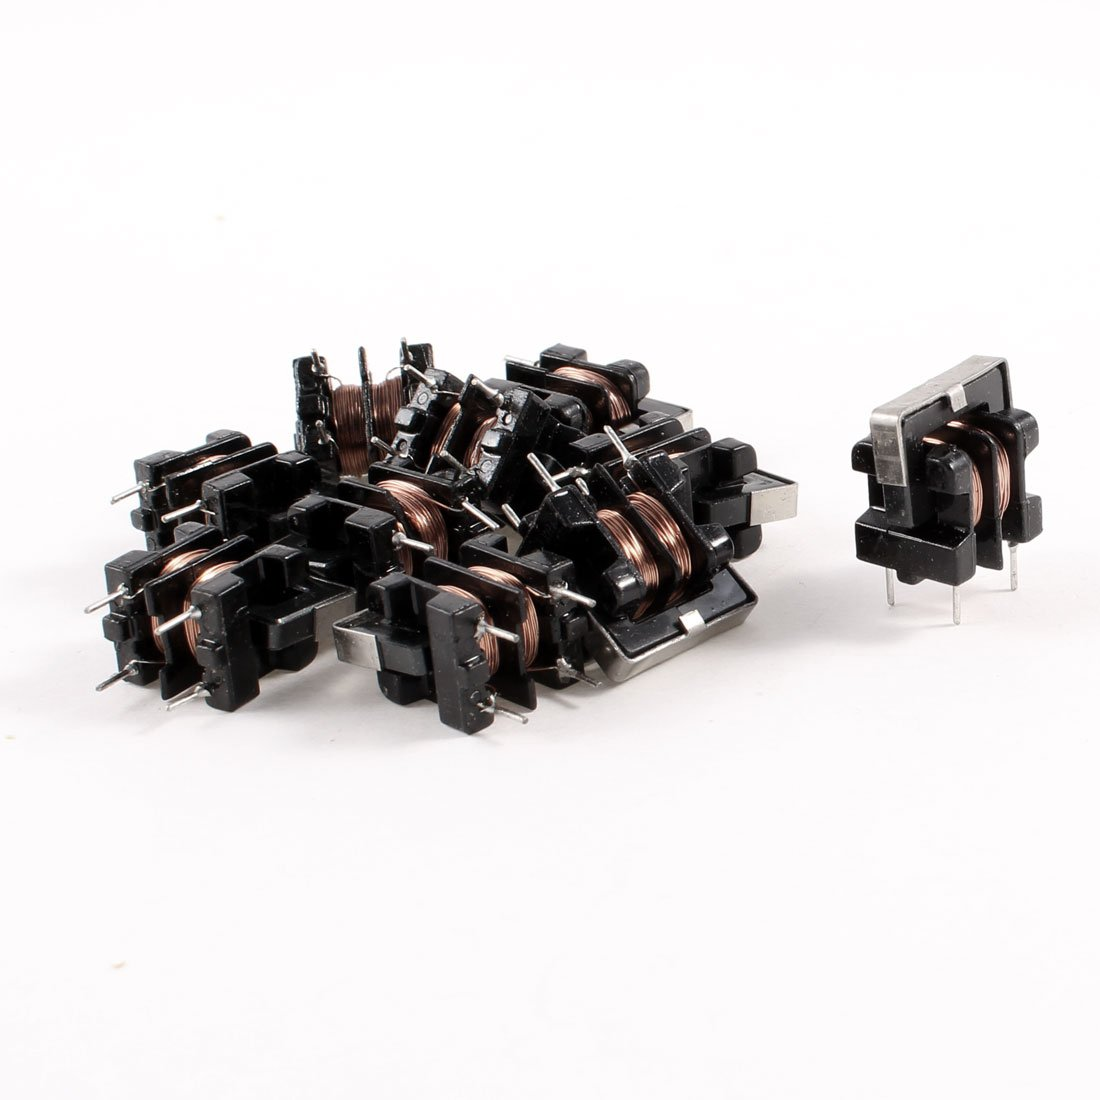 10 Pcs UF9.8 Common Mode Line Filter Inductor 25MH 0.4A Coil Sourcingmap a13071500ux0202